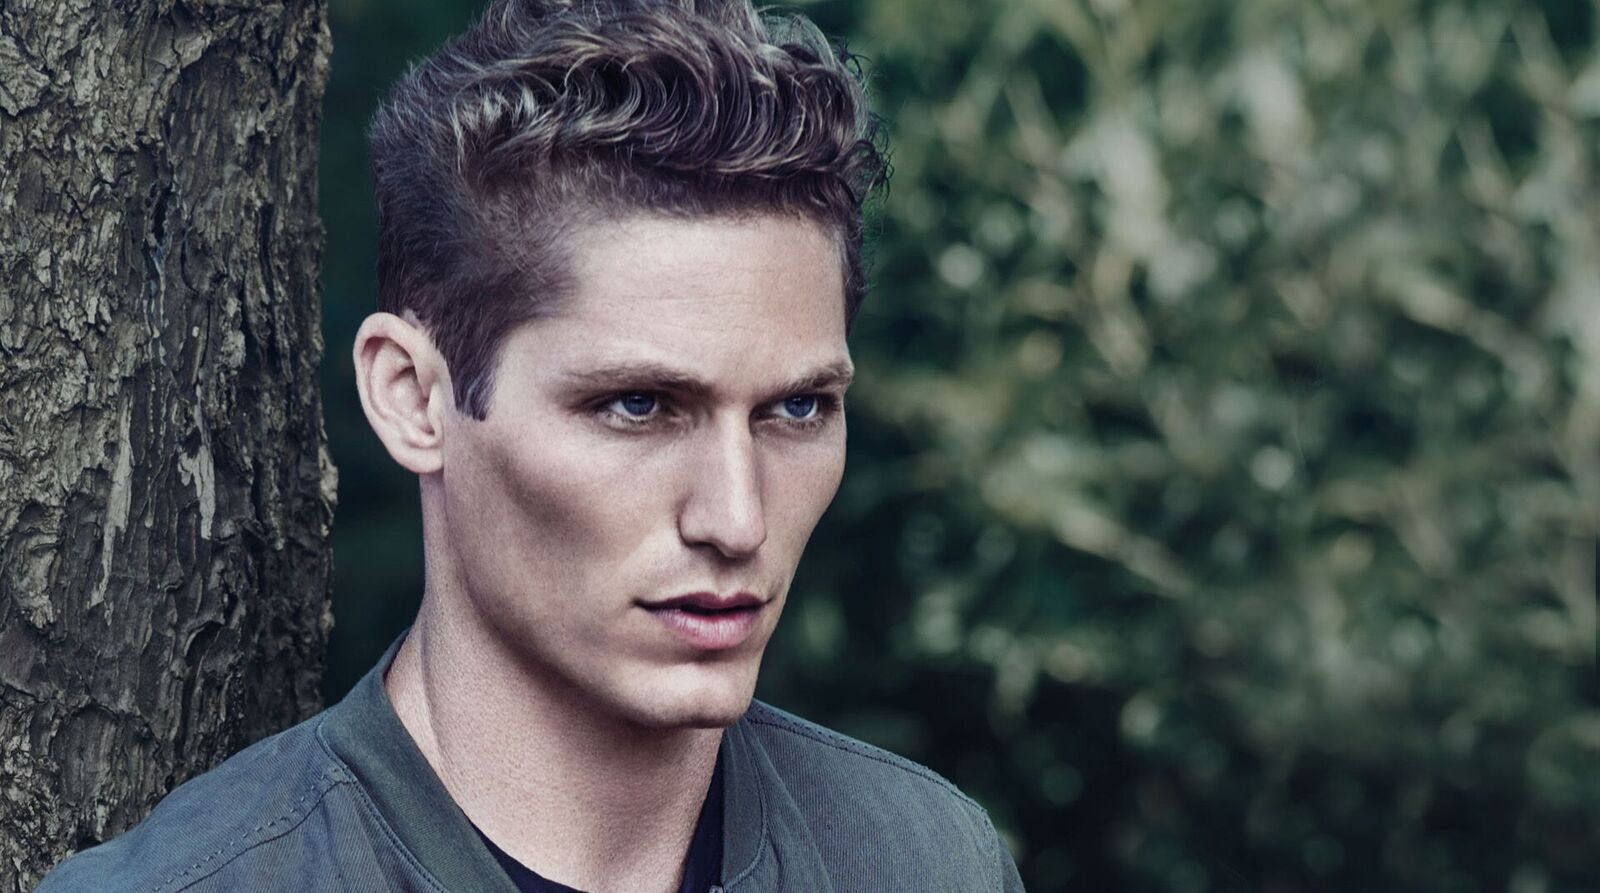 Best ideas about Mens Haircuts Minneapolis . Save or Pin Home Avant Hair Now.